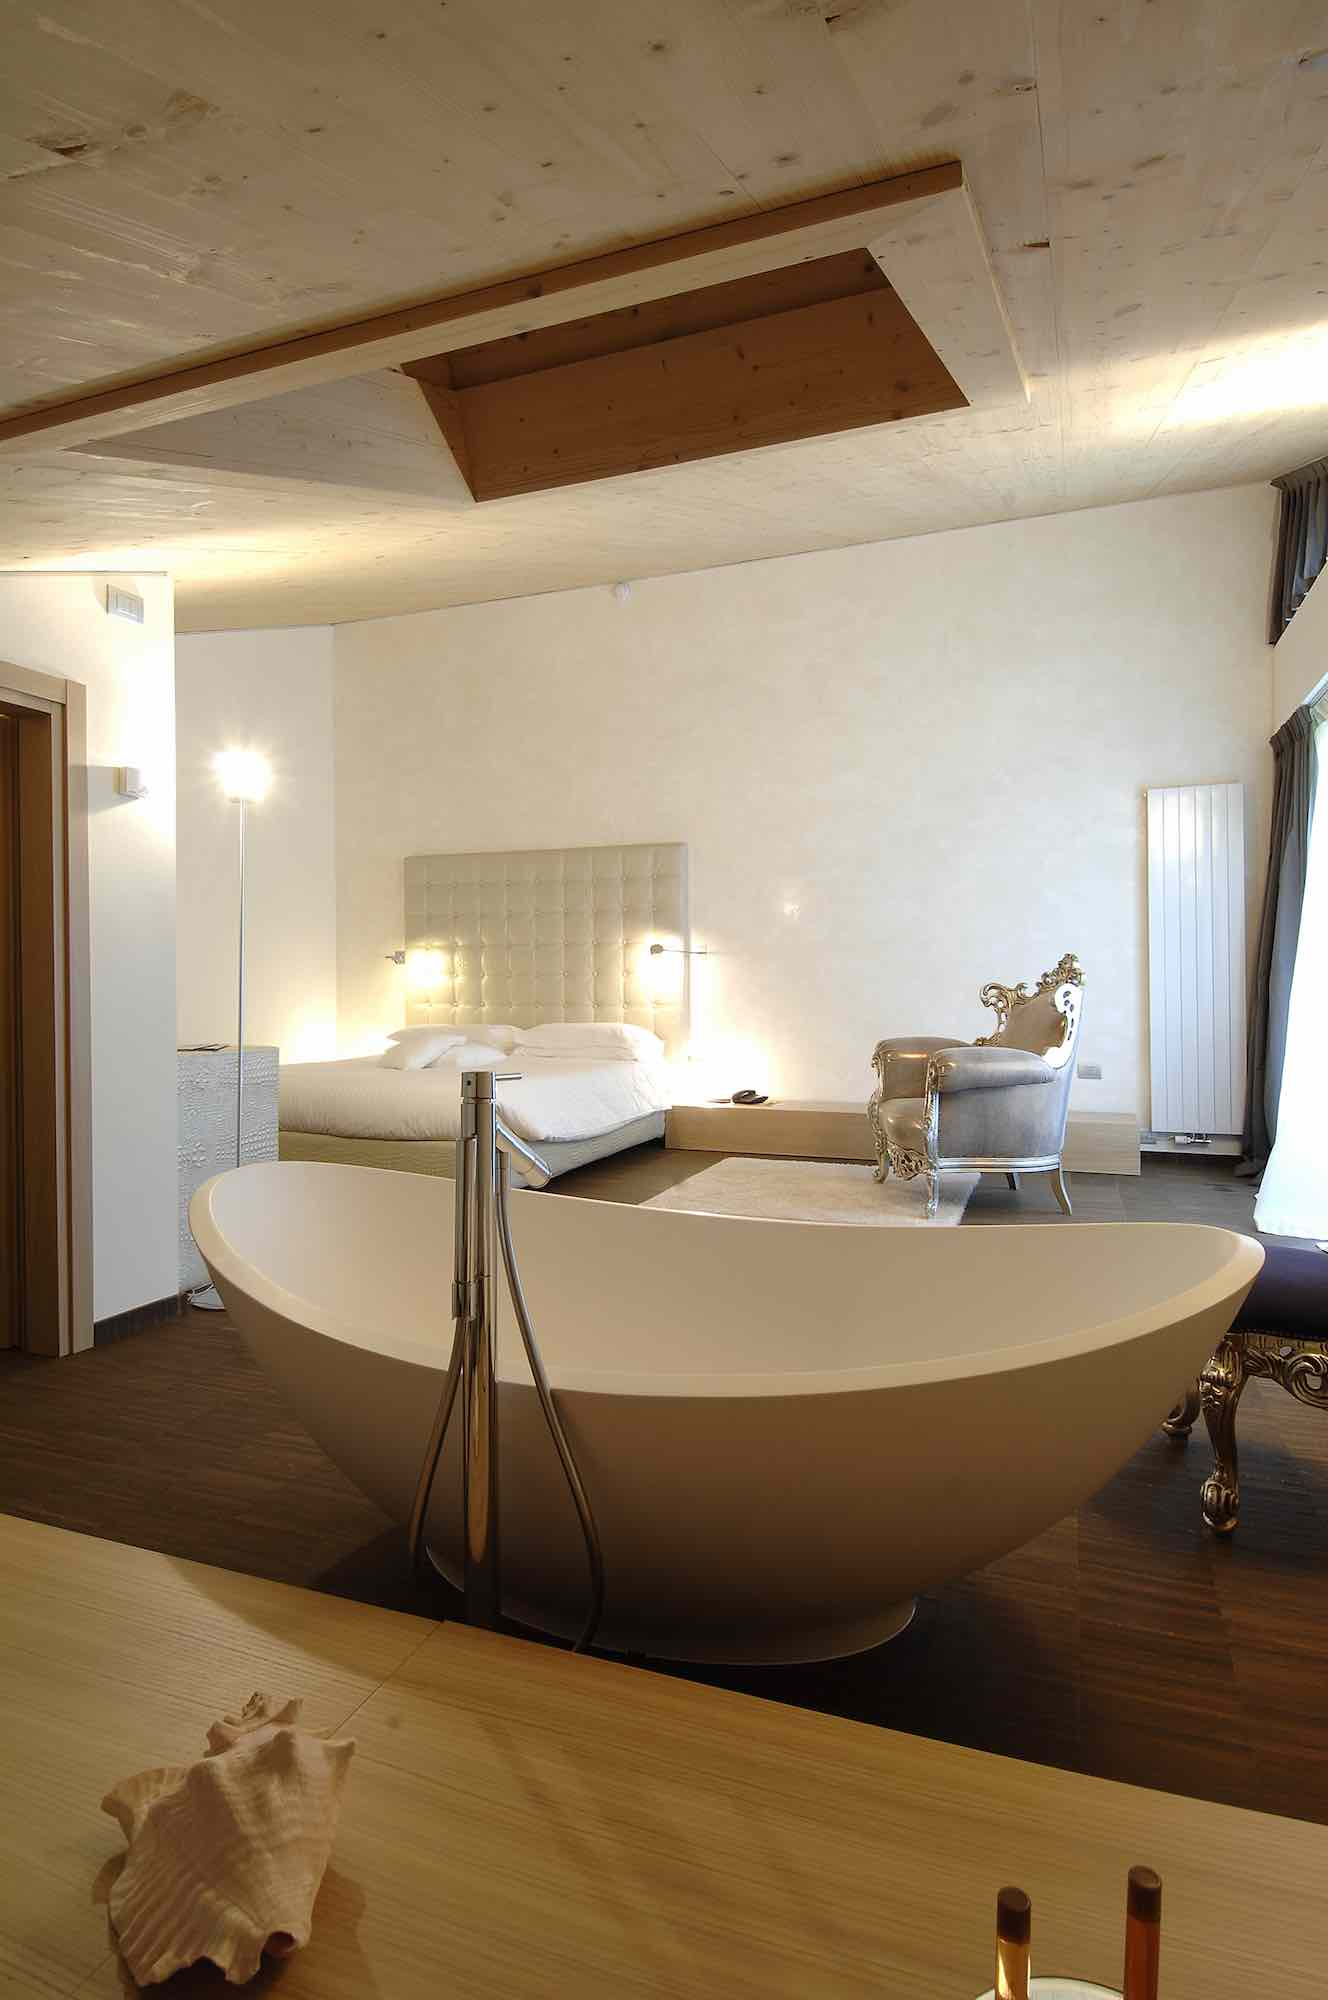 Hotel Lac Salin and Mountain resort - Via Saroch N.496d, Livigno 23041 - Room - Royal Suite 3